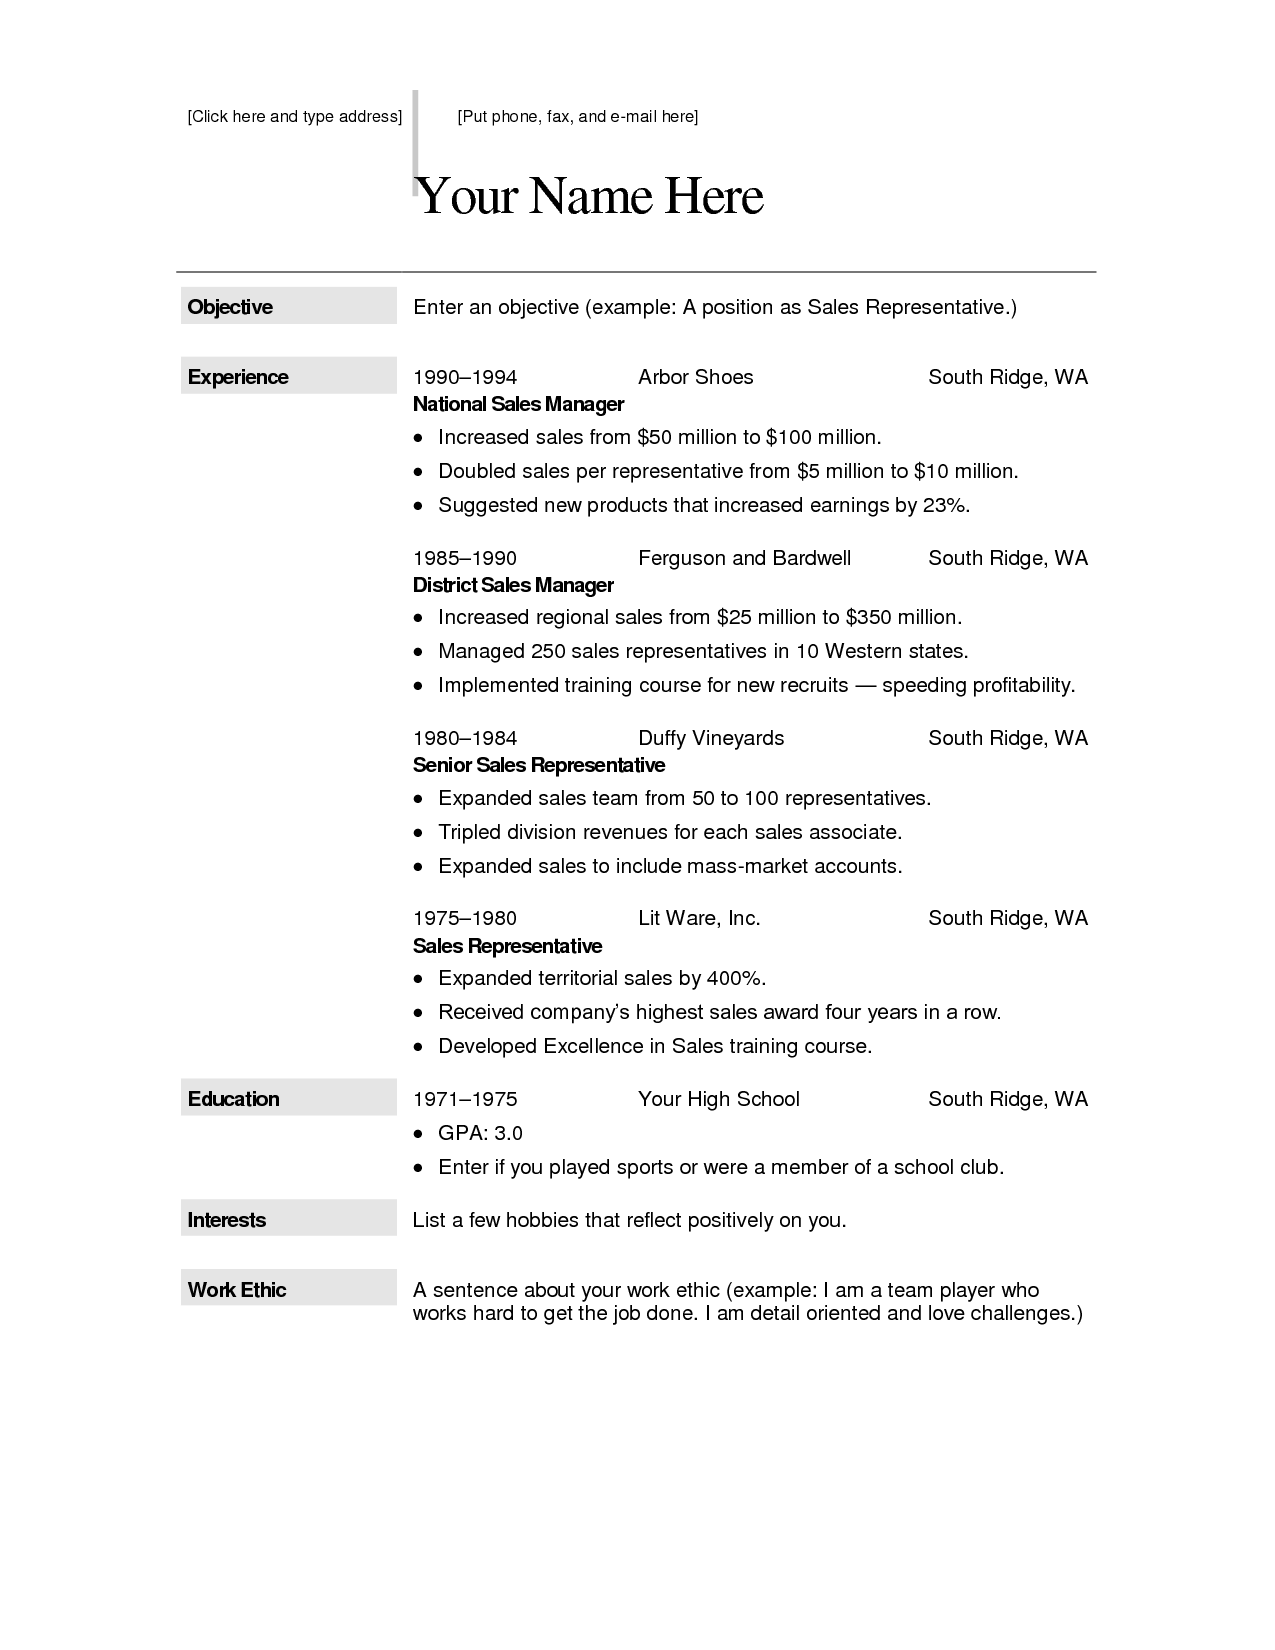 Free Resume Templates Word 2010 New Free Creative Resume Templates For Macfree Creative Resume